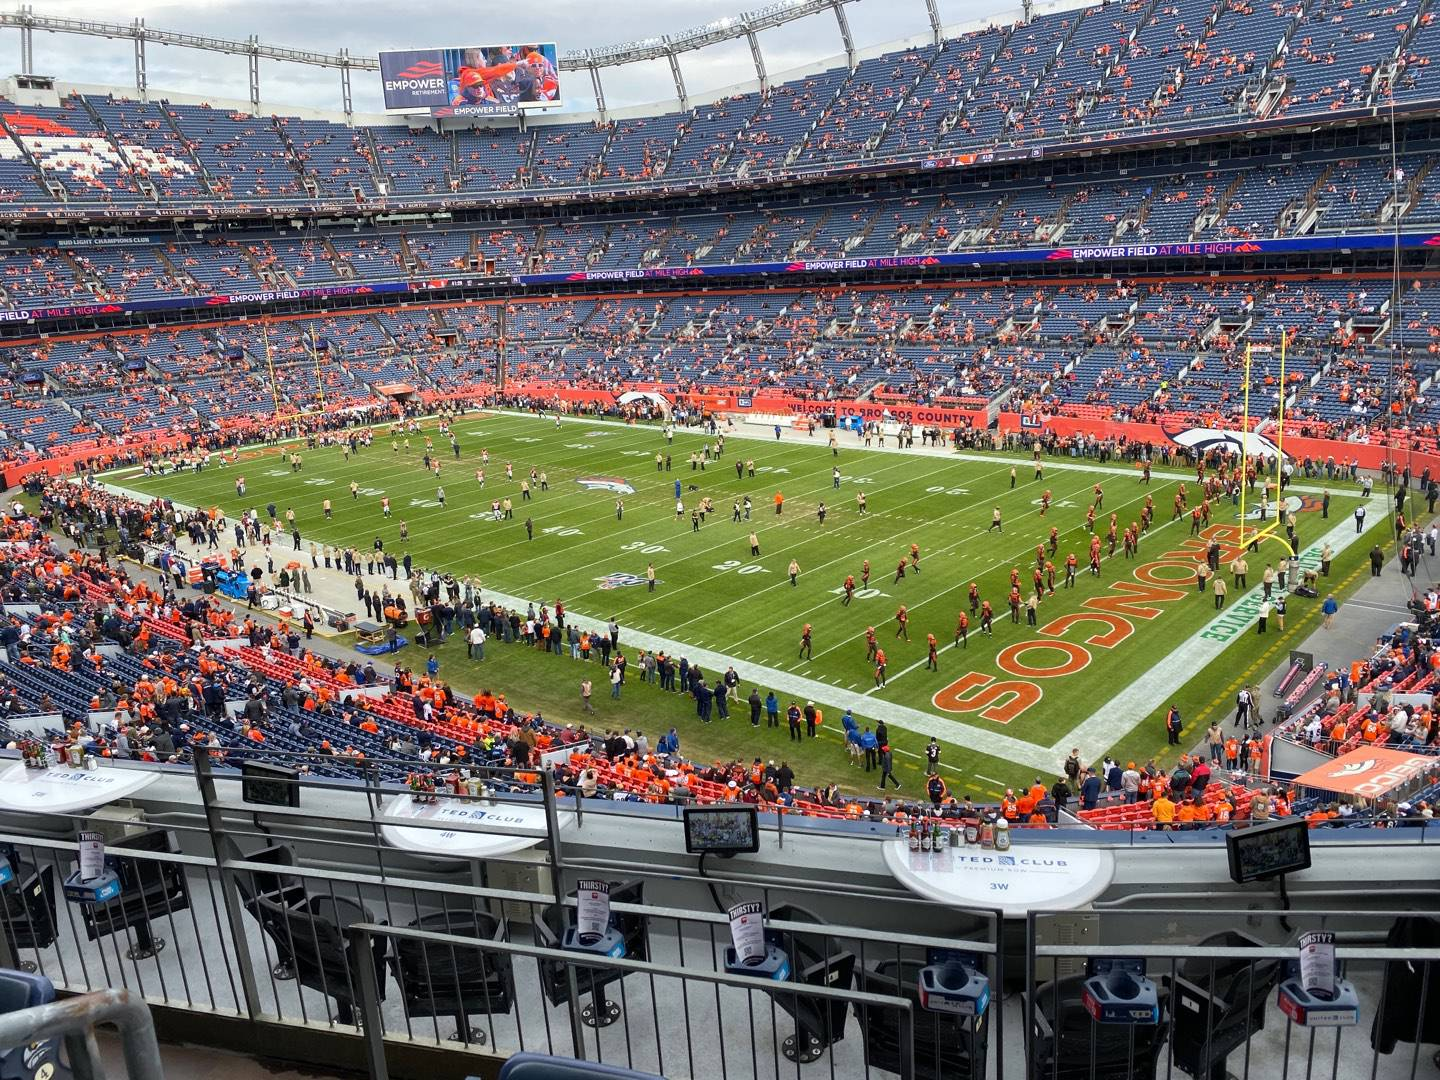 Empower Field at Mile High Stadium Section 301 Row 7 Seat 18